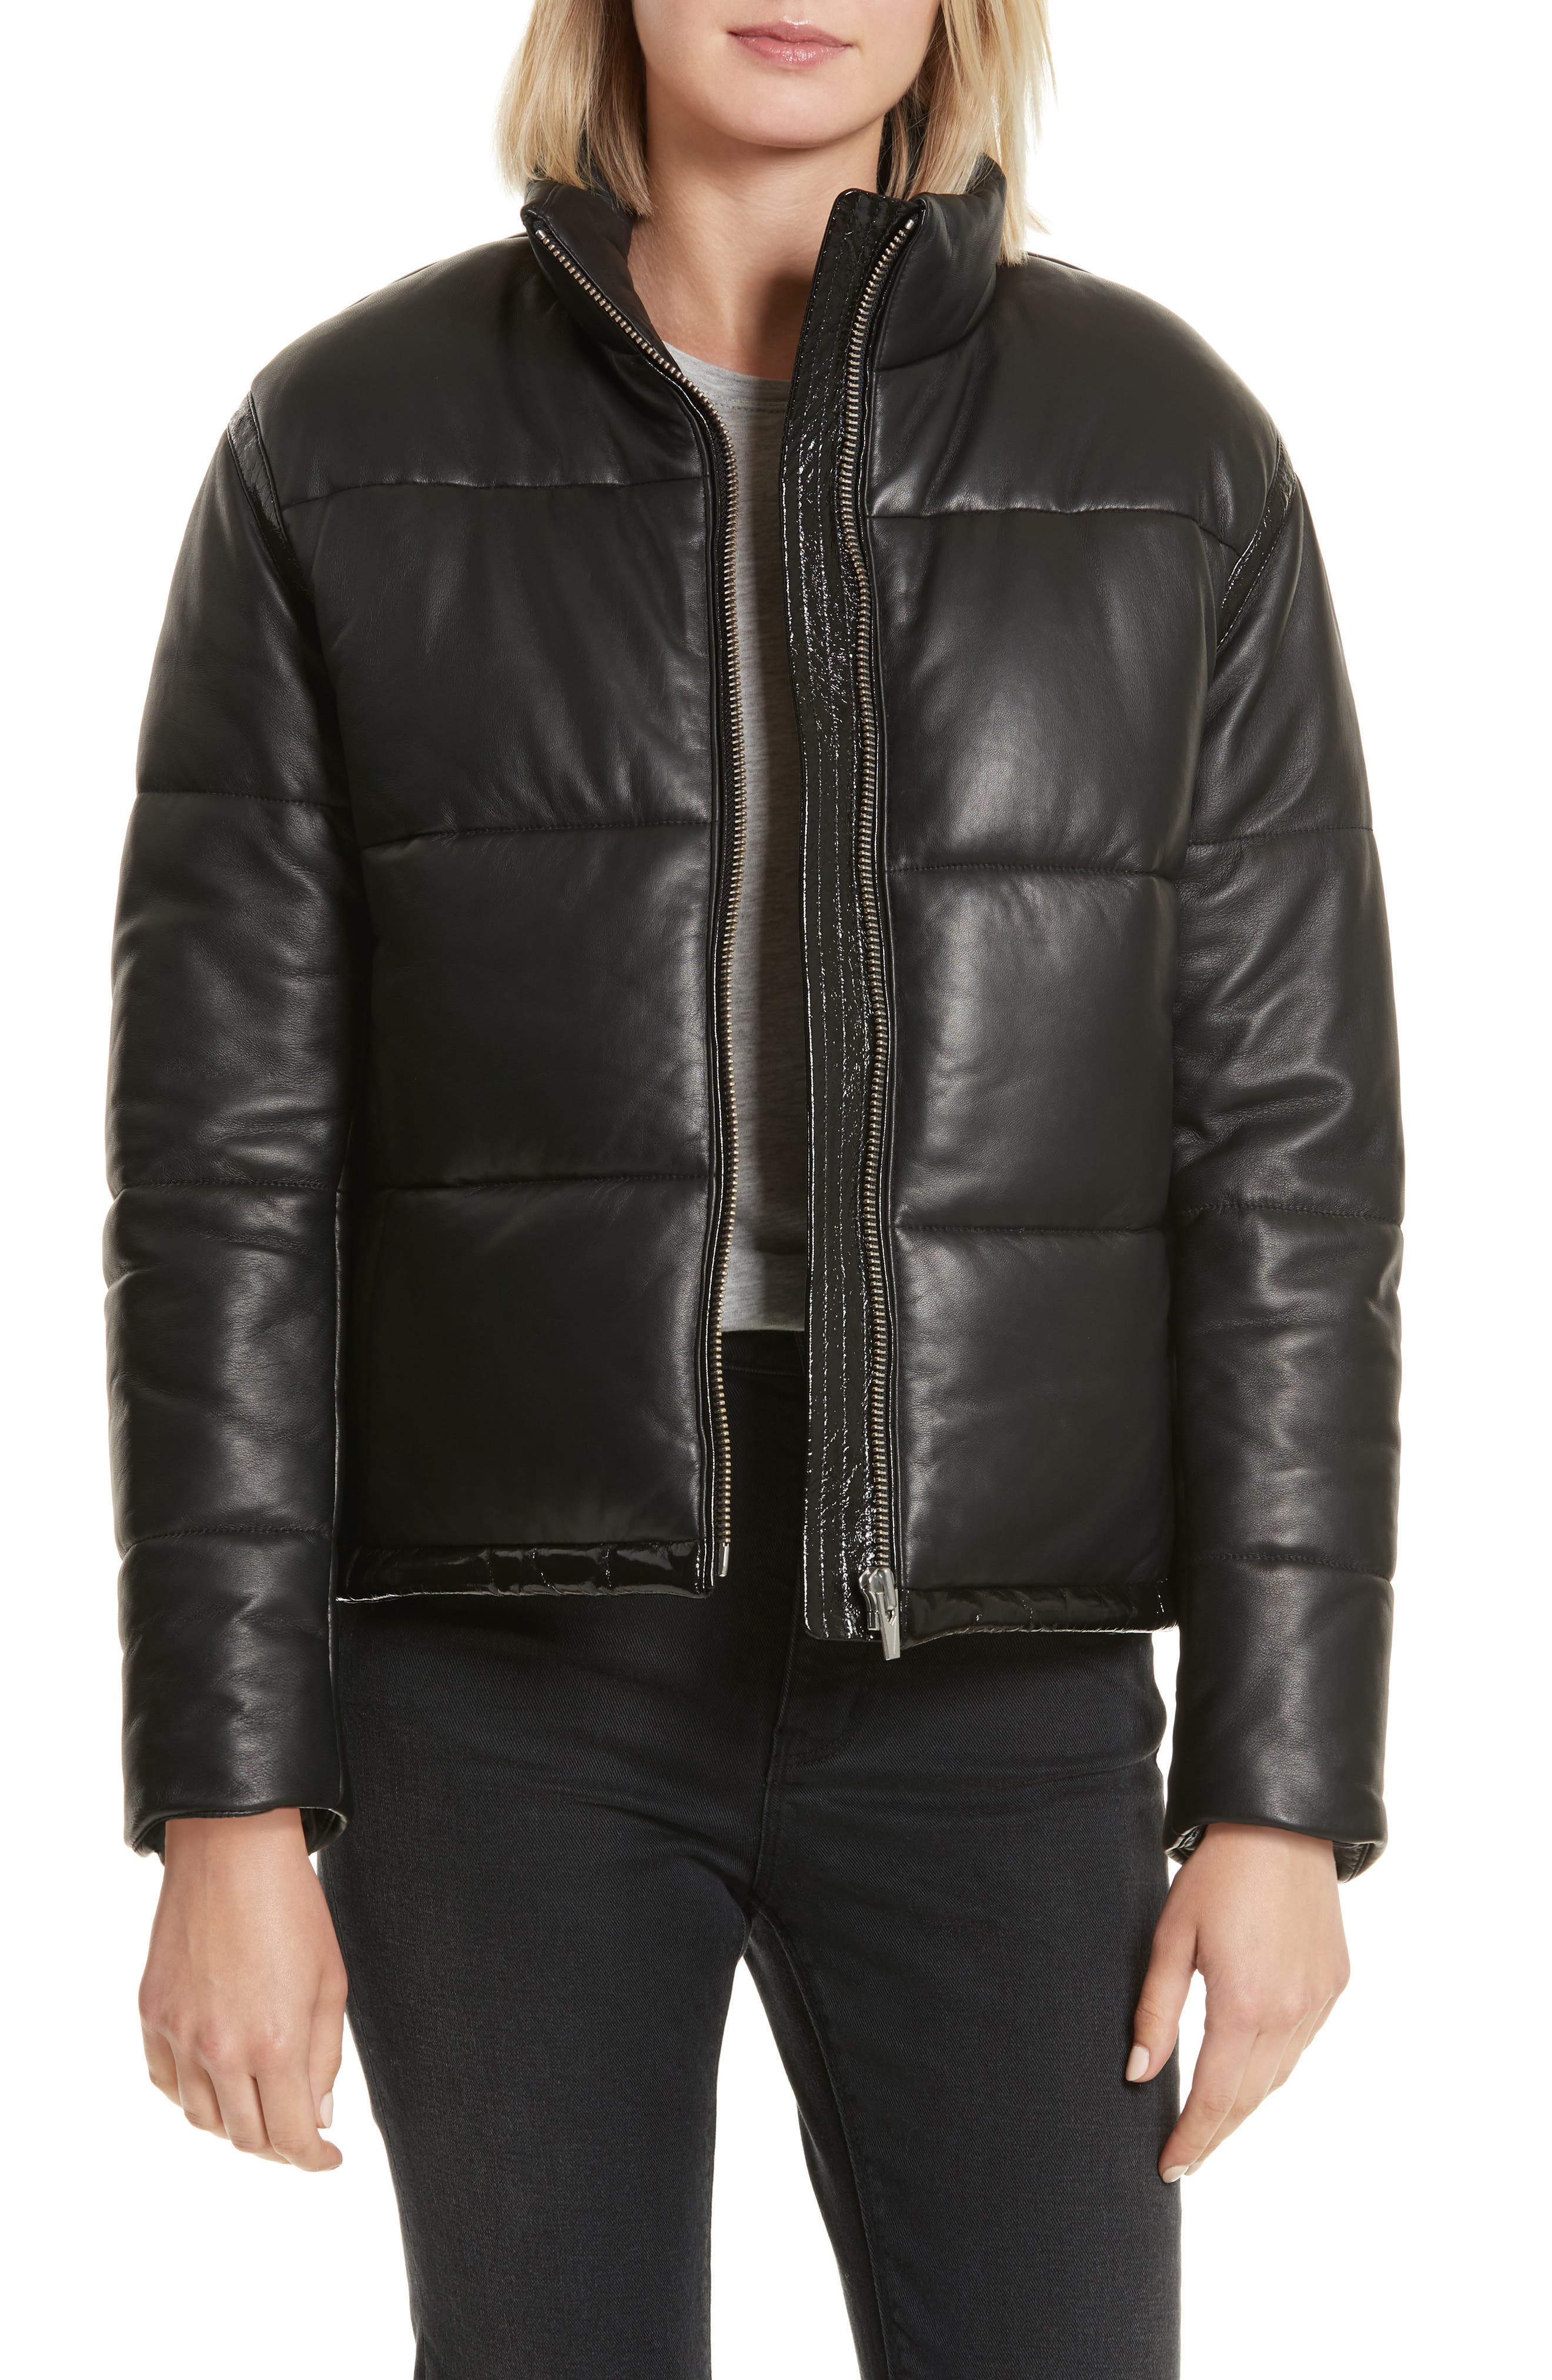 Alternate Image 1 Selected - Veda Power Puff Leather Jacket